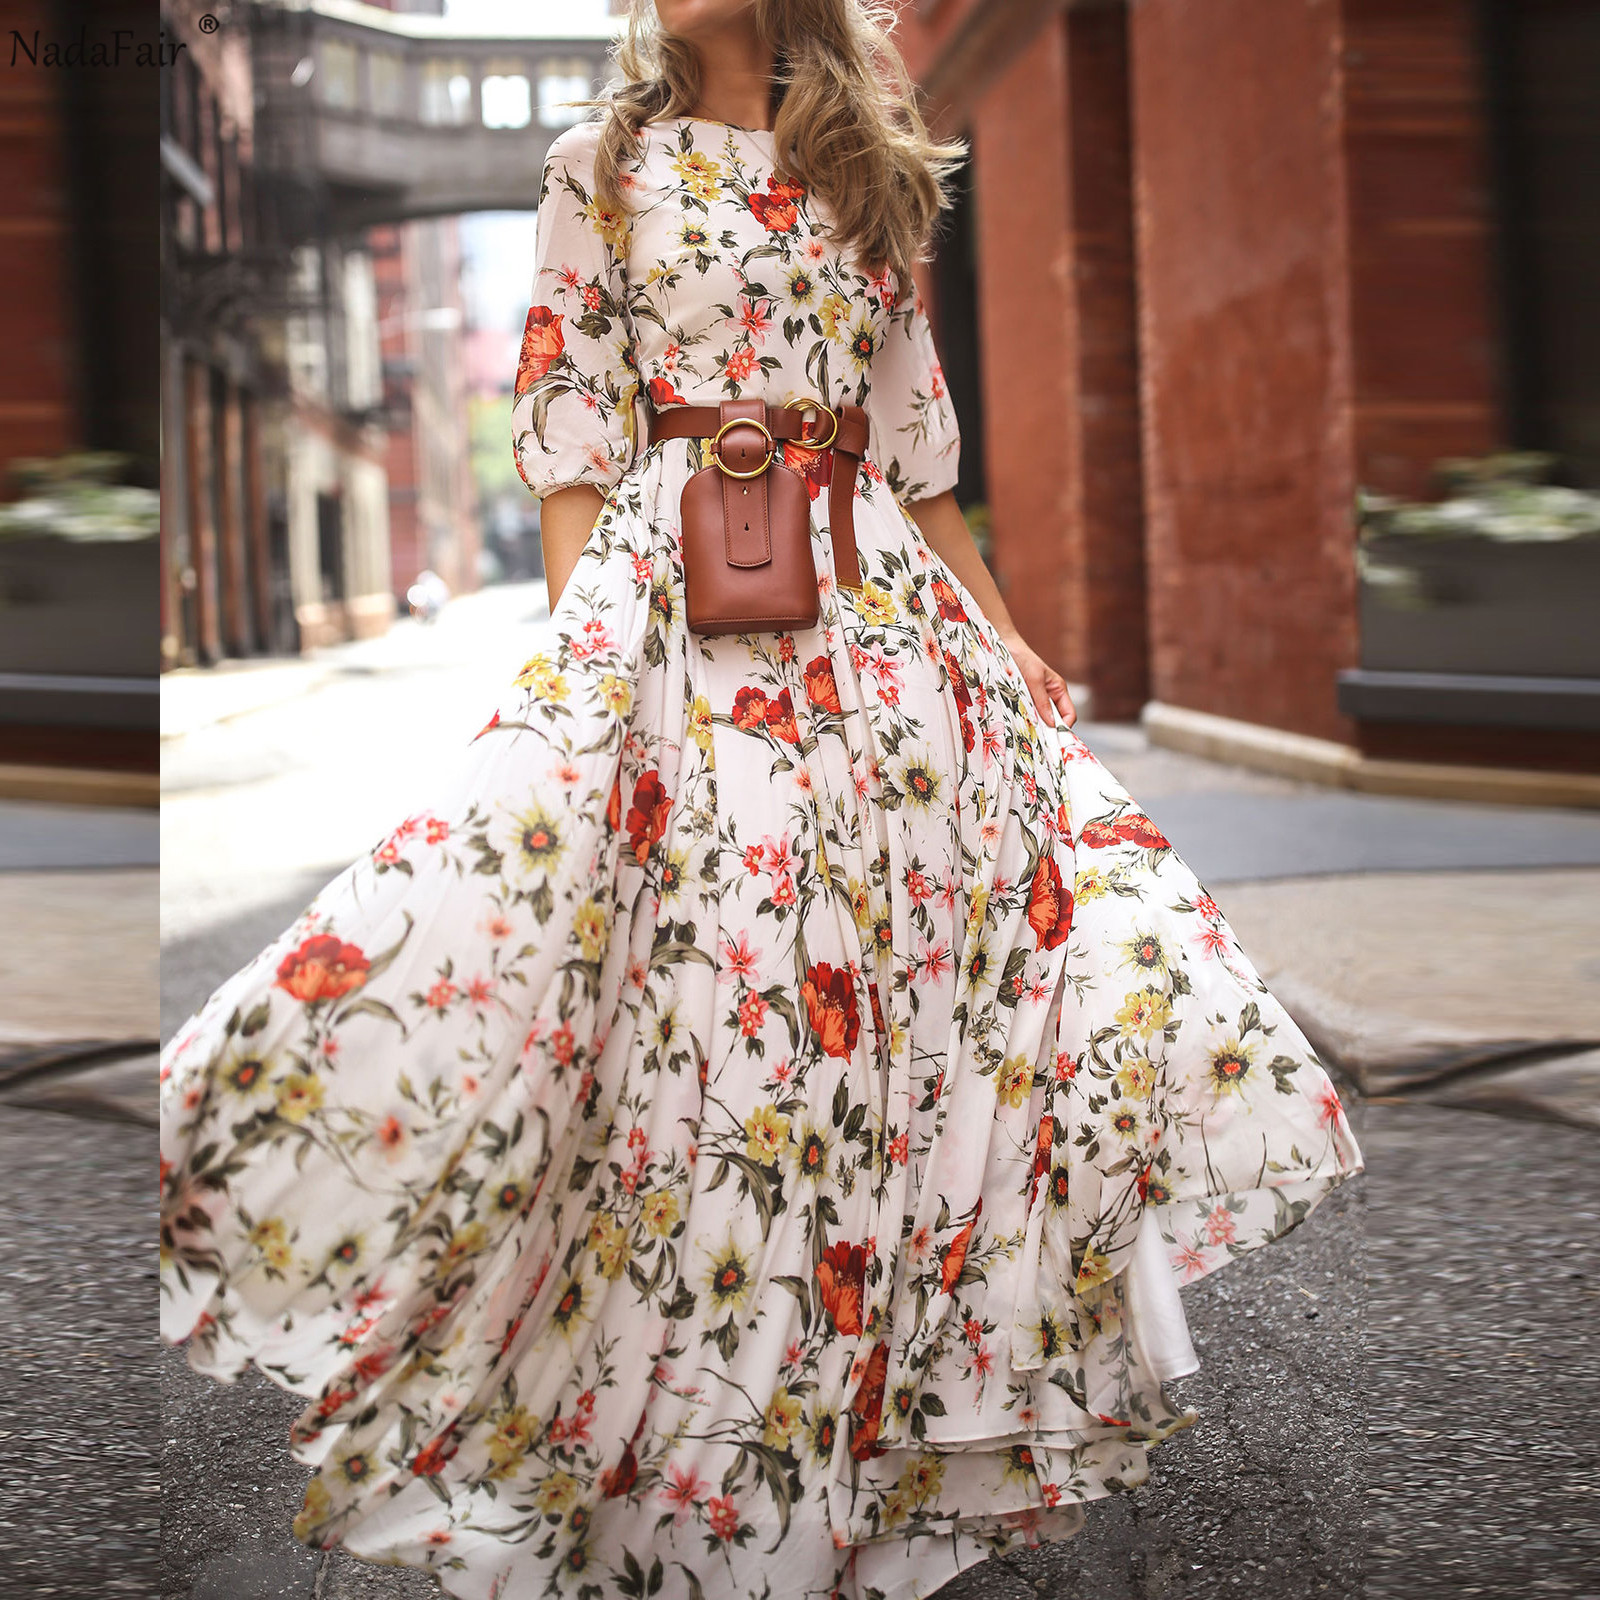 Nadafair Maxi Floral Boho Dress Woman Plus Size High Waist O Neck Printed Elegant Summer Beach Long Dresses Female Vestidos